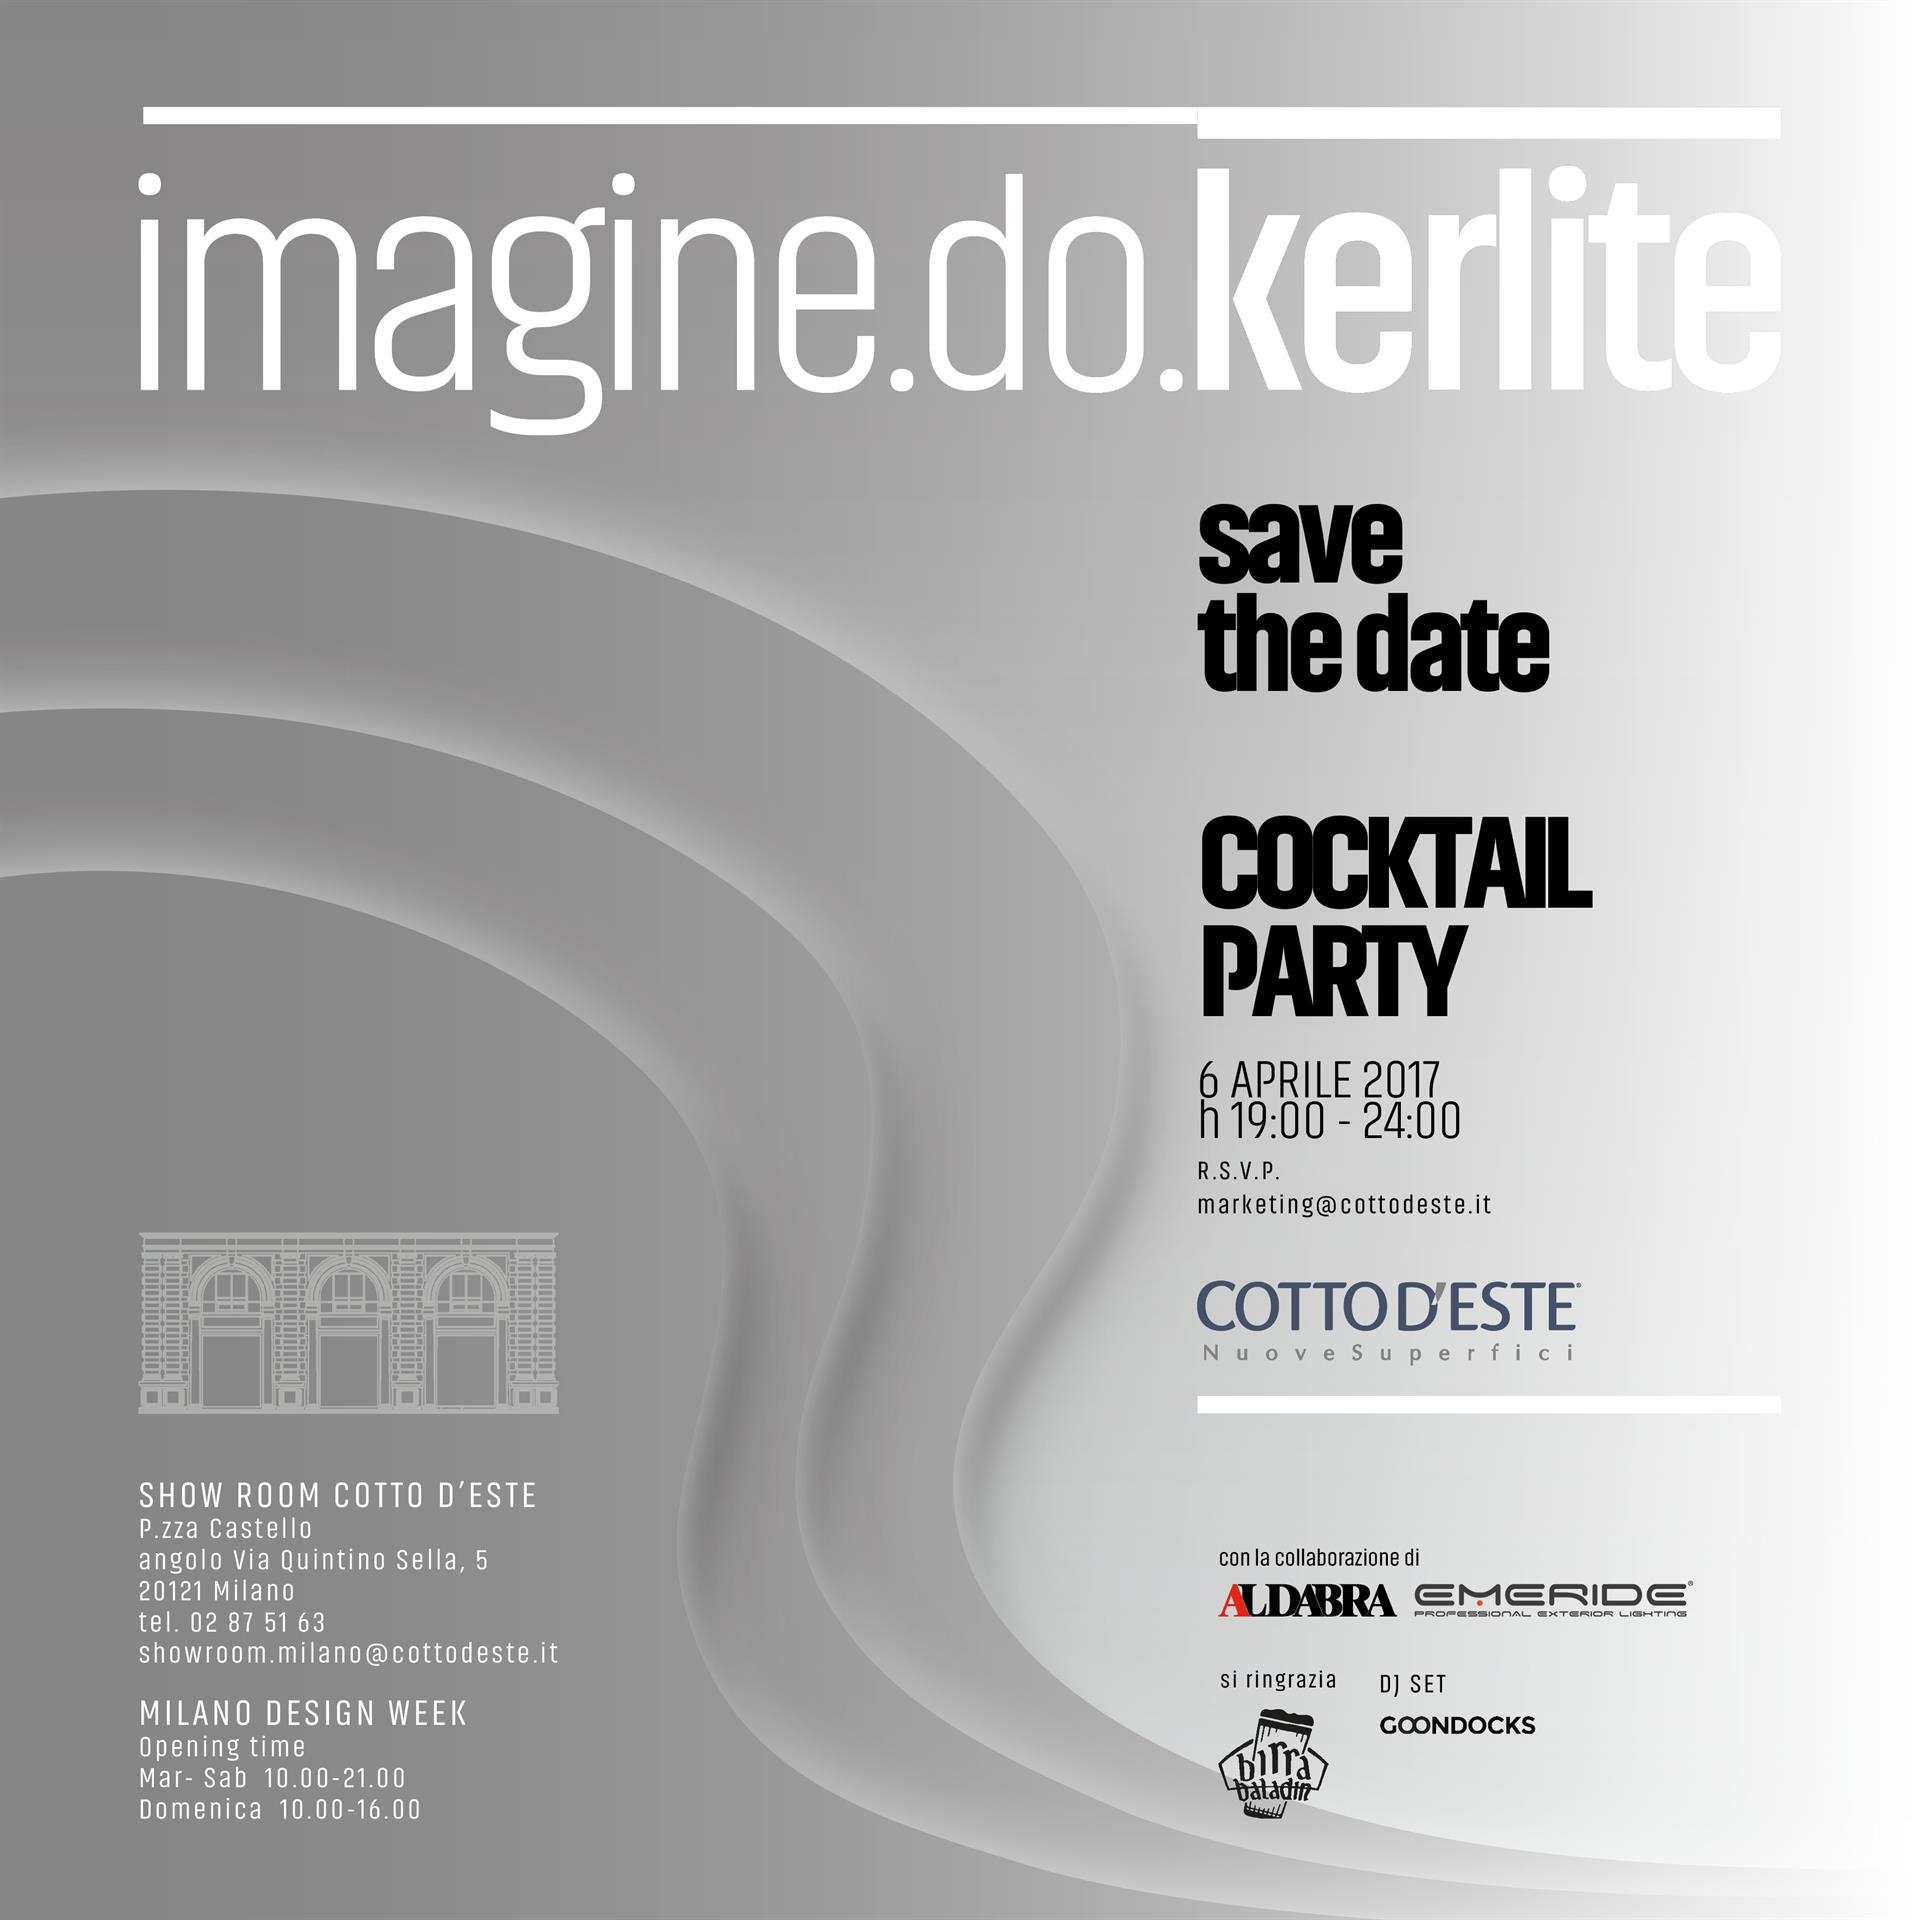 imagine.do.kerlite